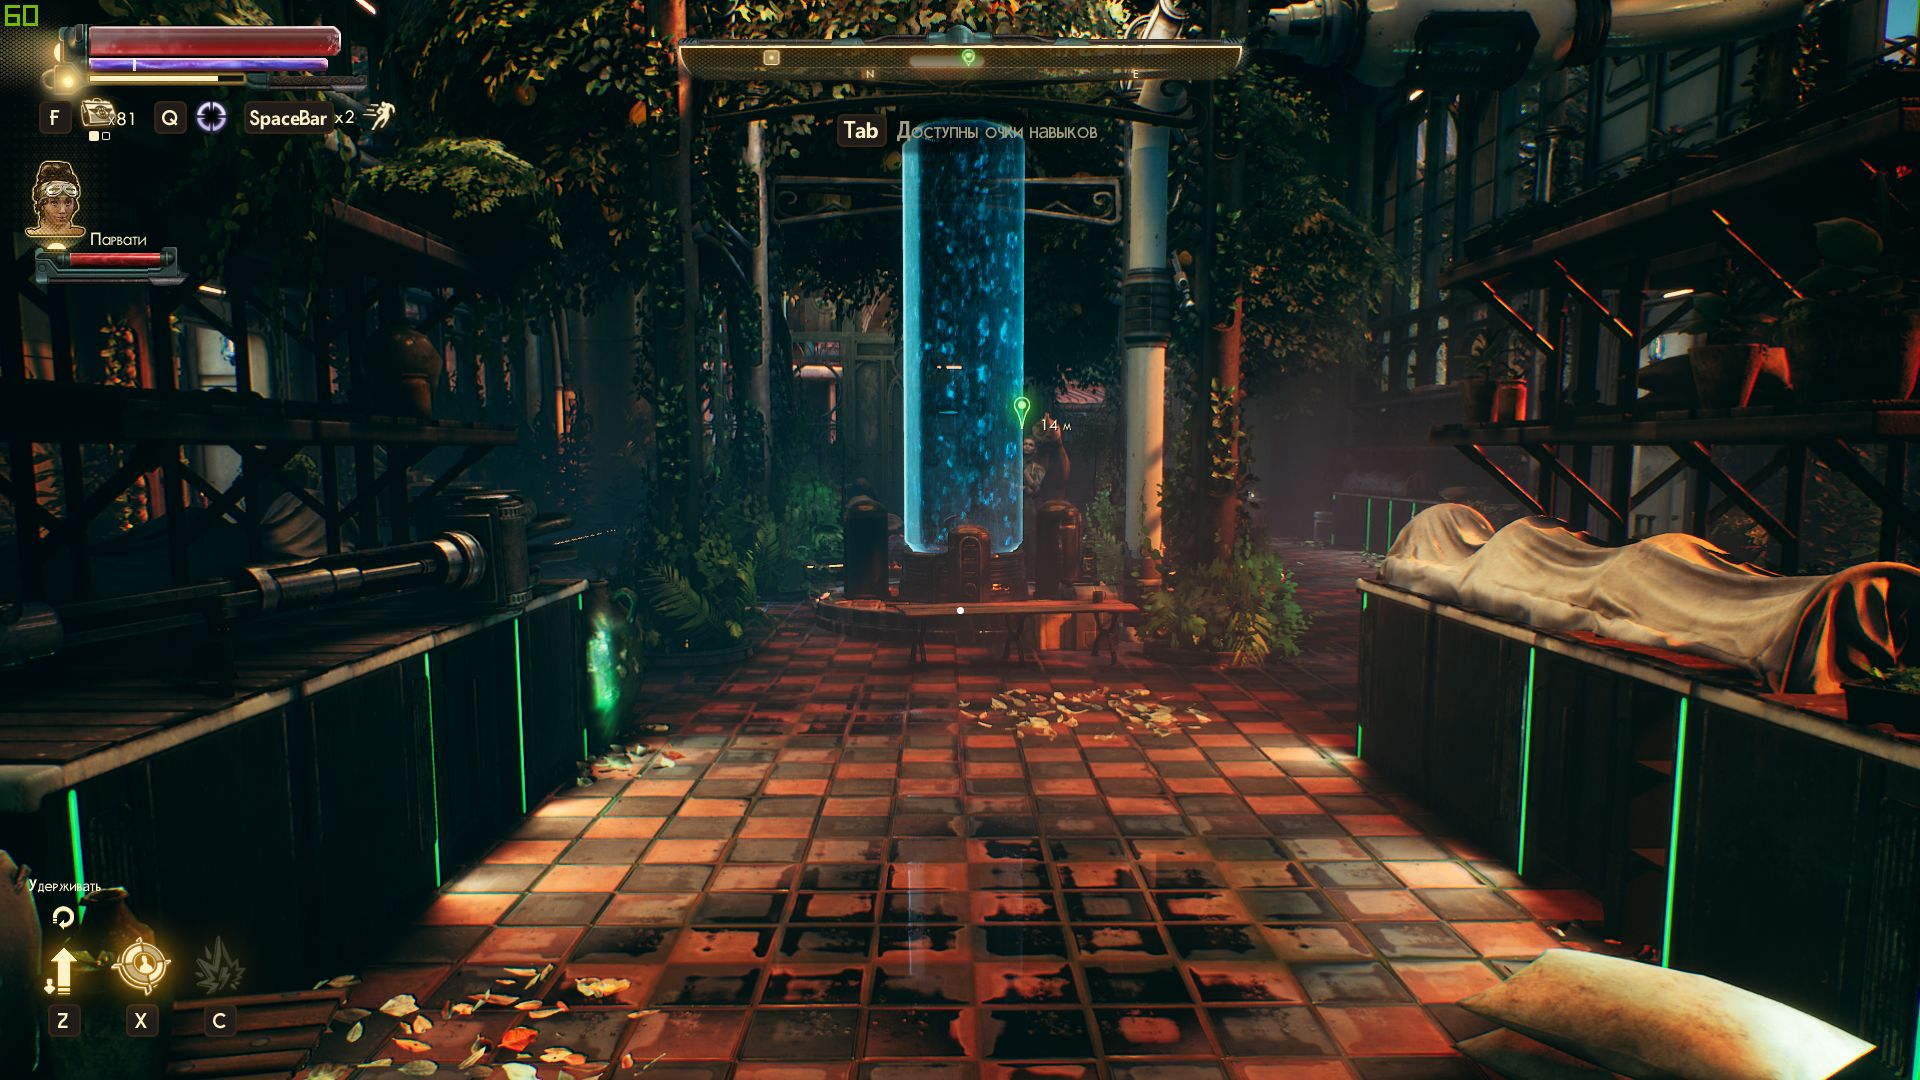 000103.Jpg - Outer Worlds, the